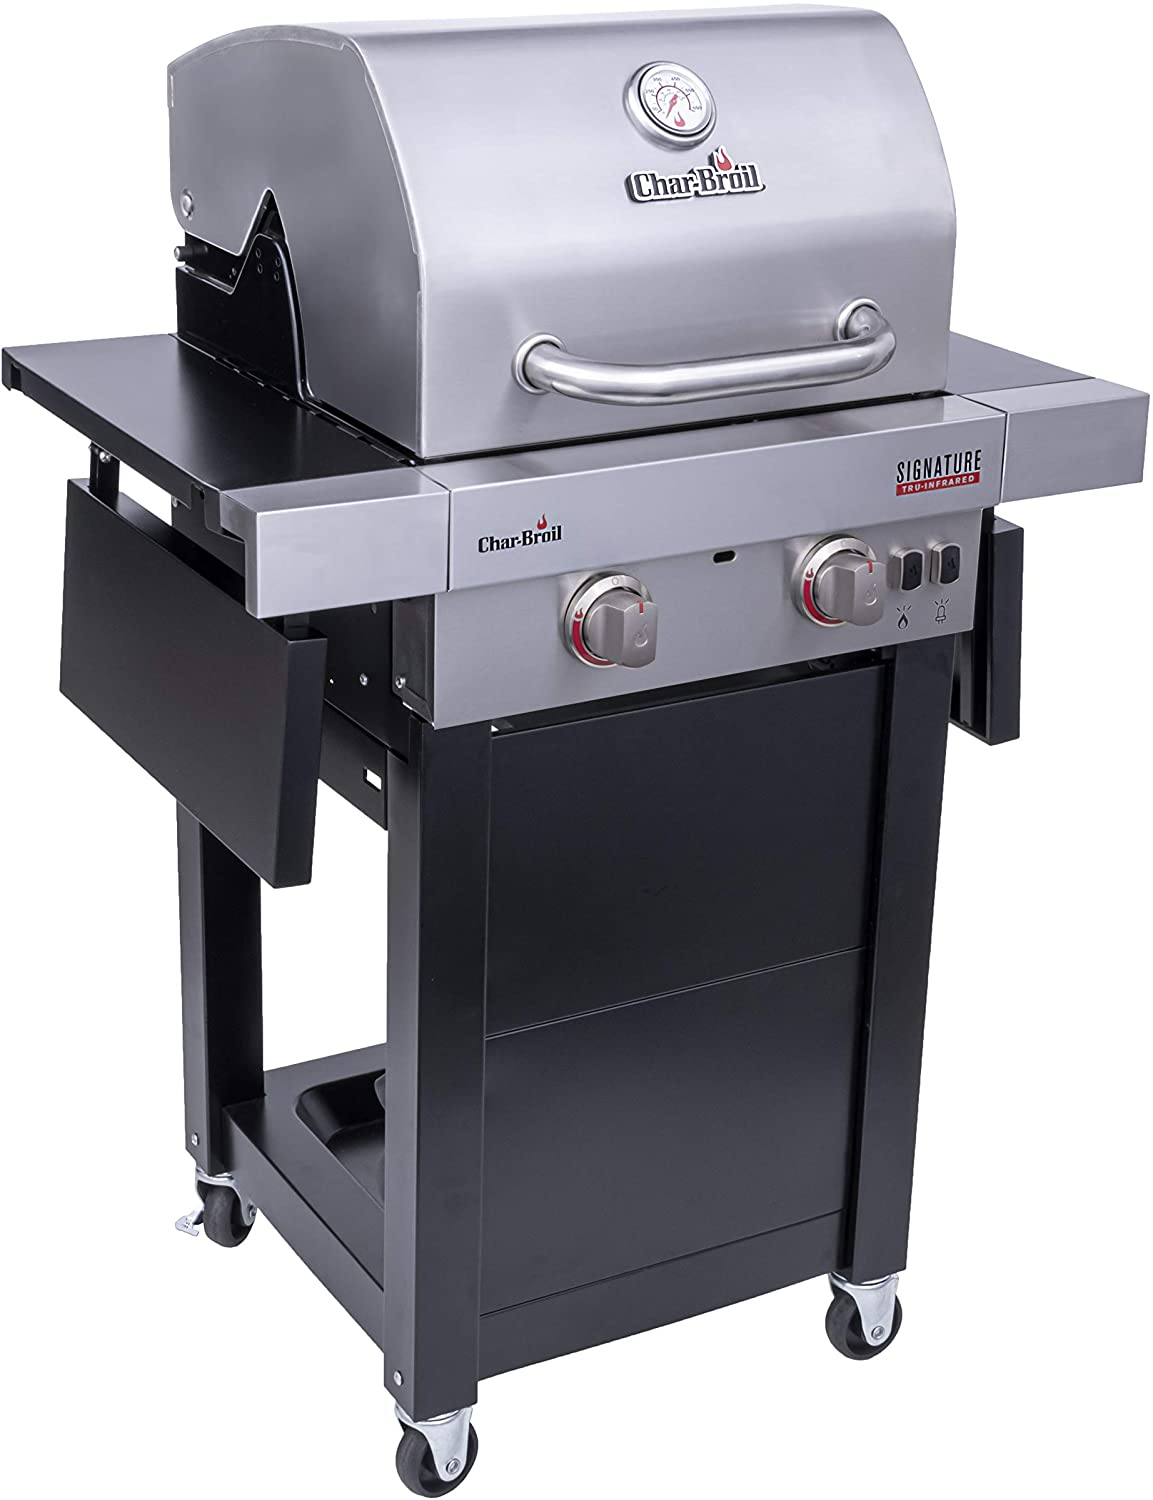 Char-Broil 463632320 Signature TRU-Infrared Cart Style Grill